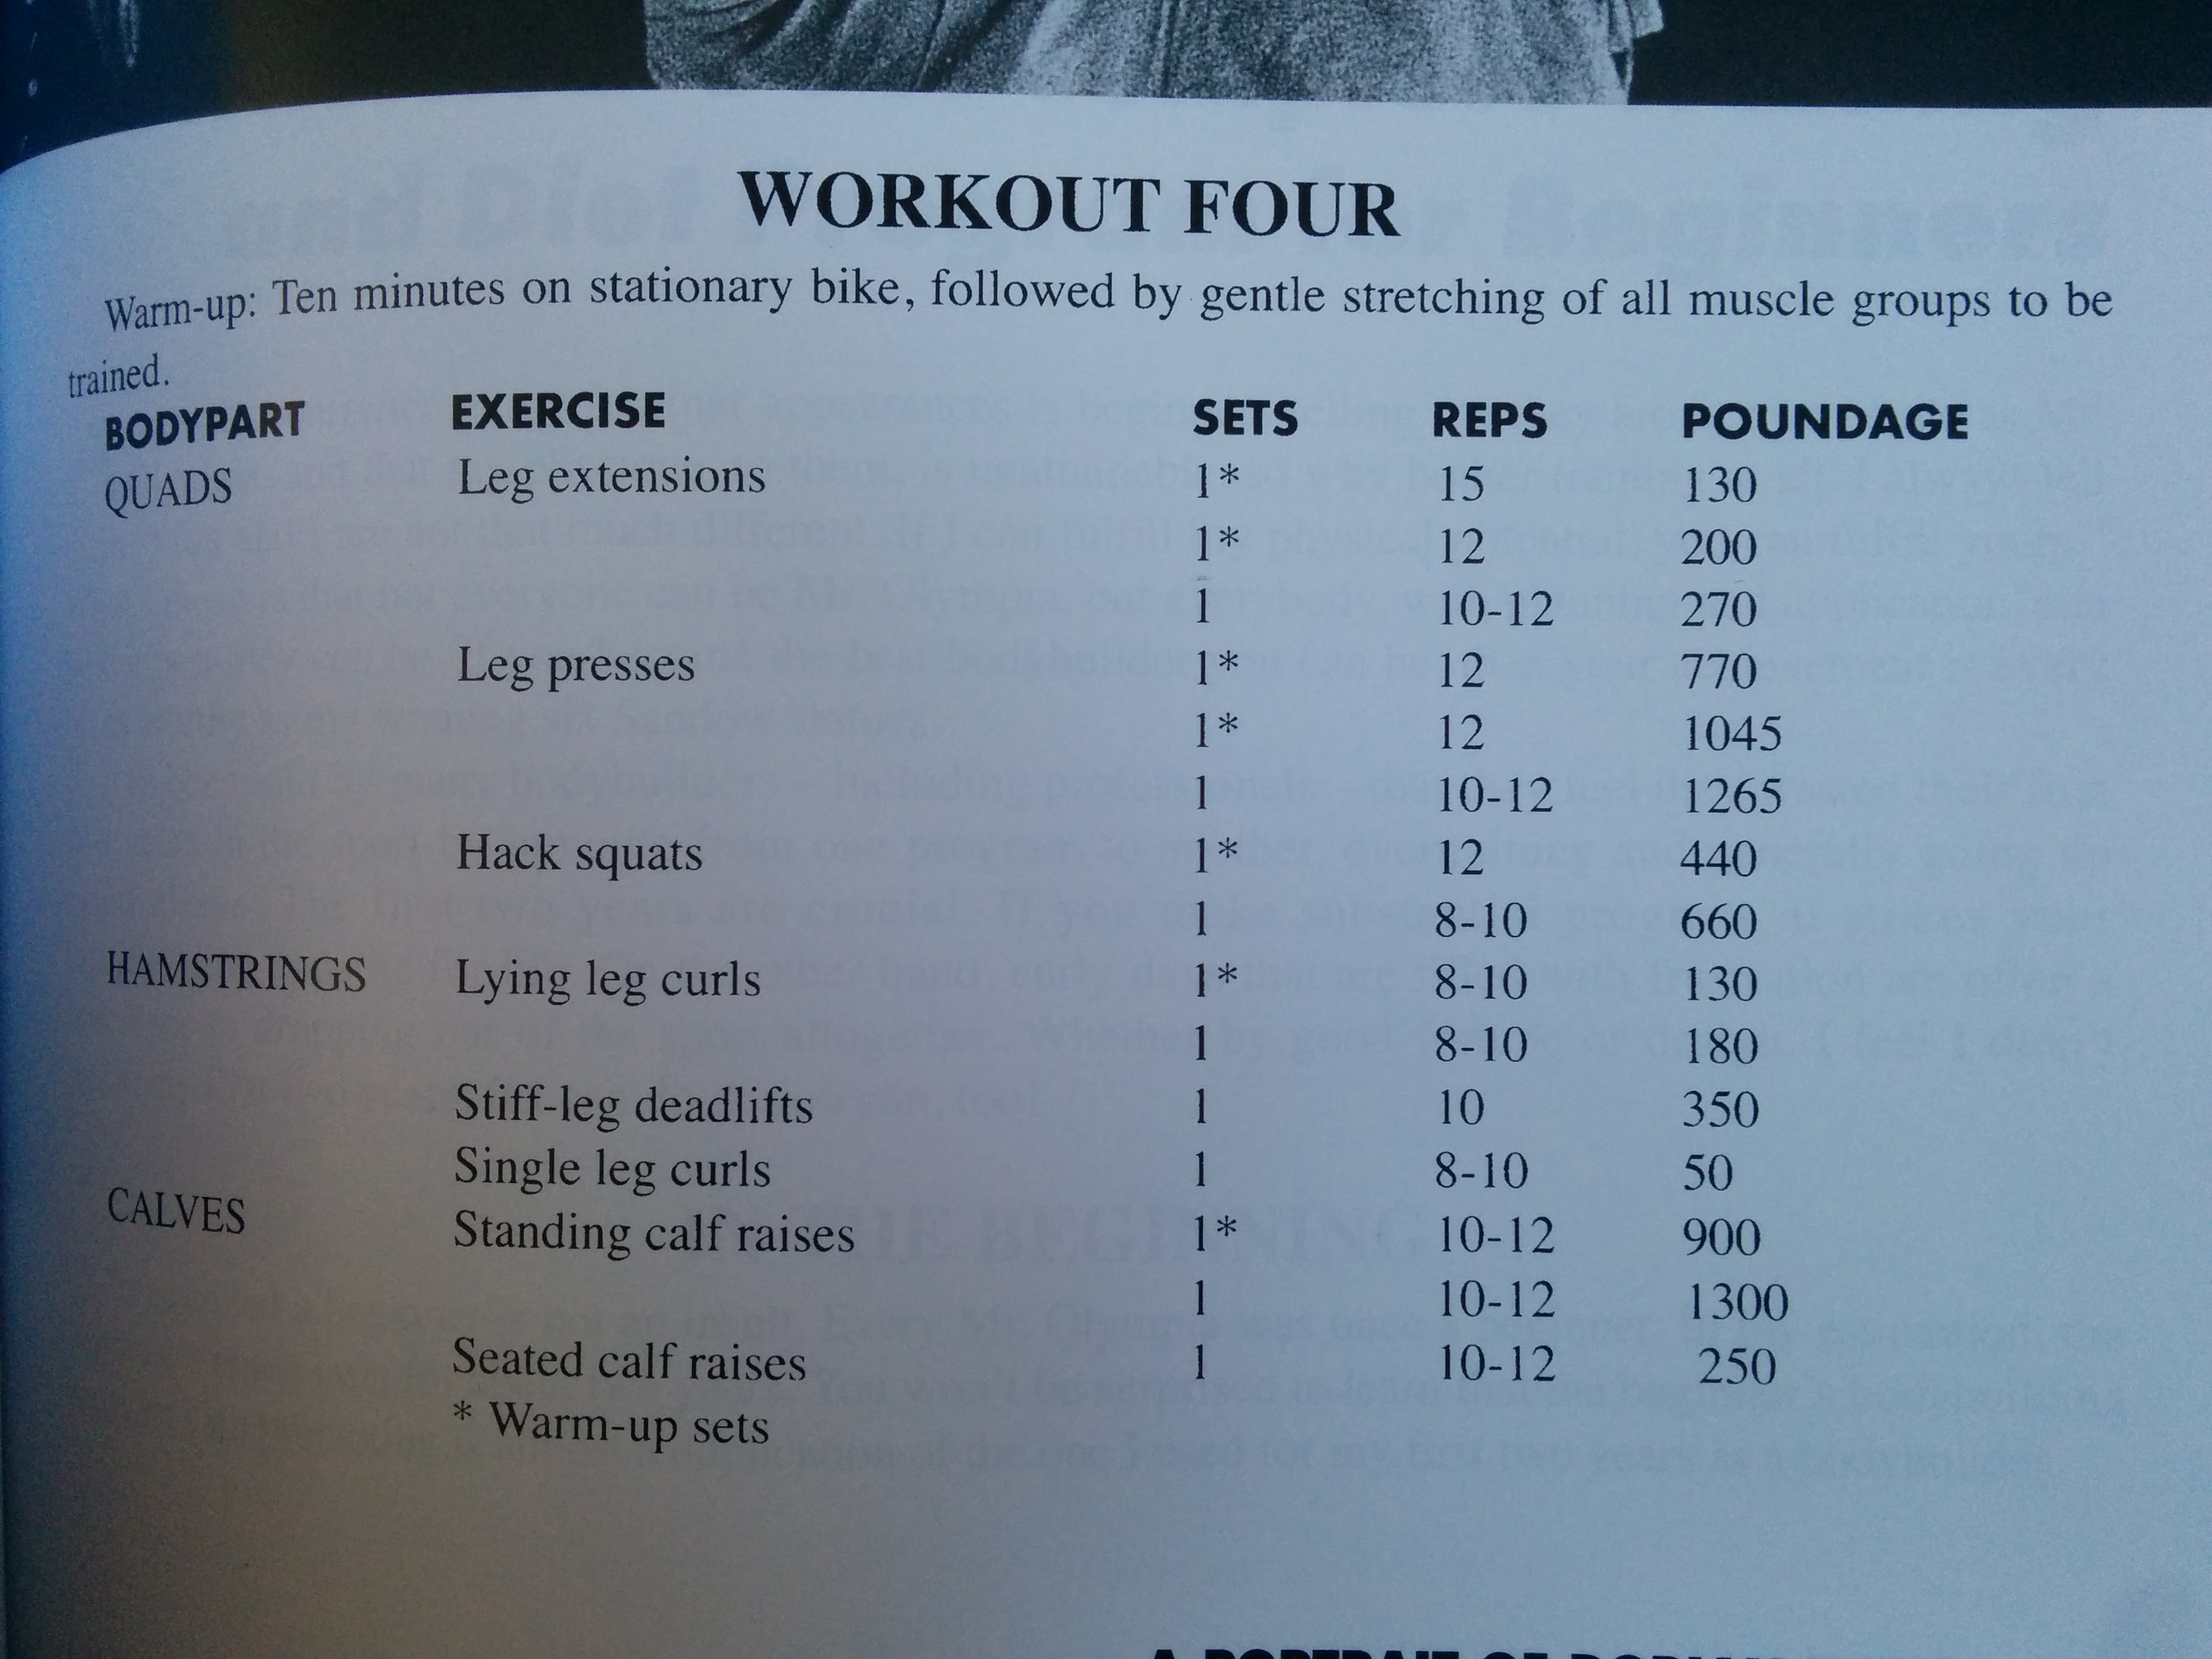 Dorian Yates Workout Routine Pdf